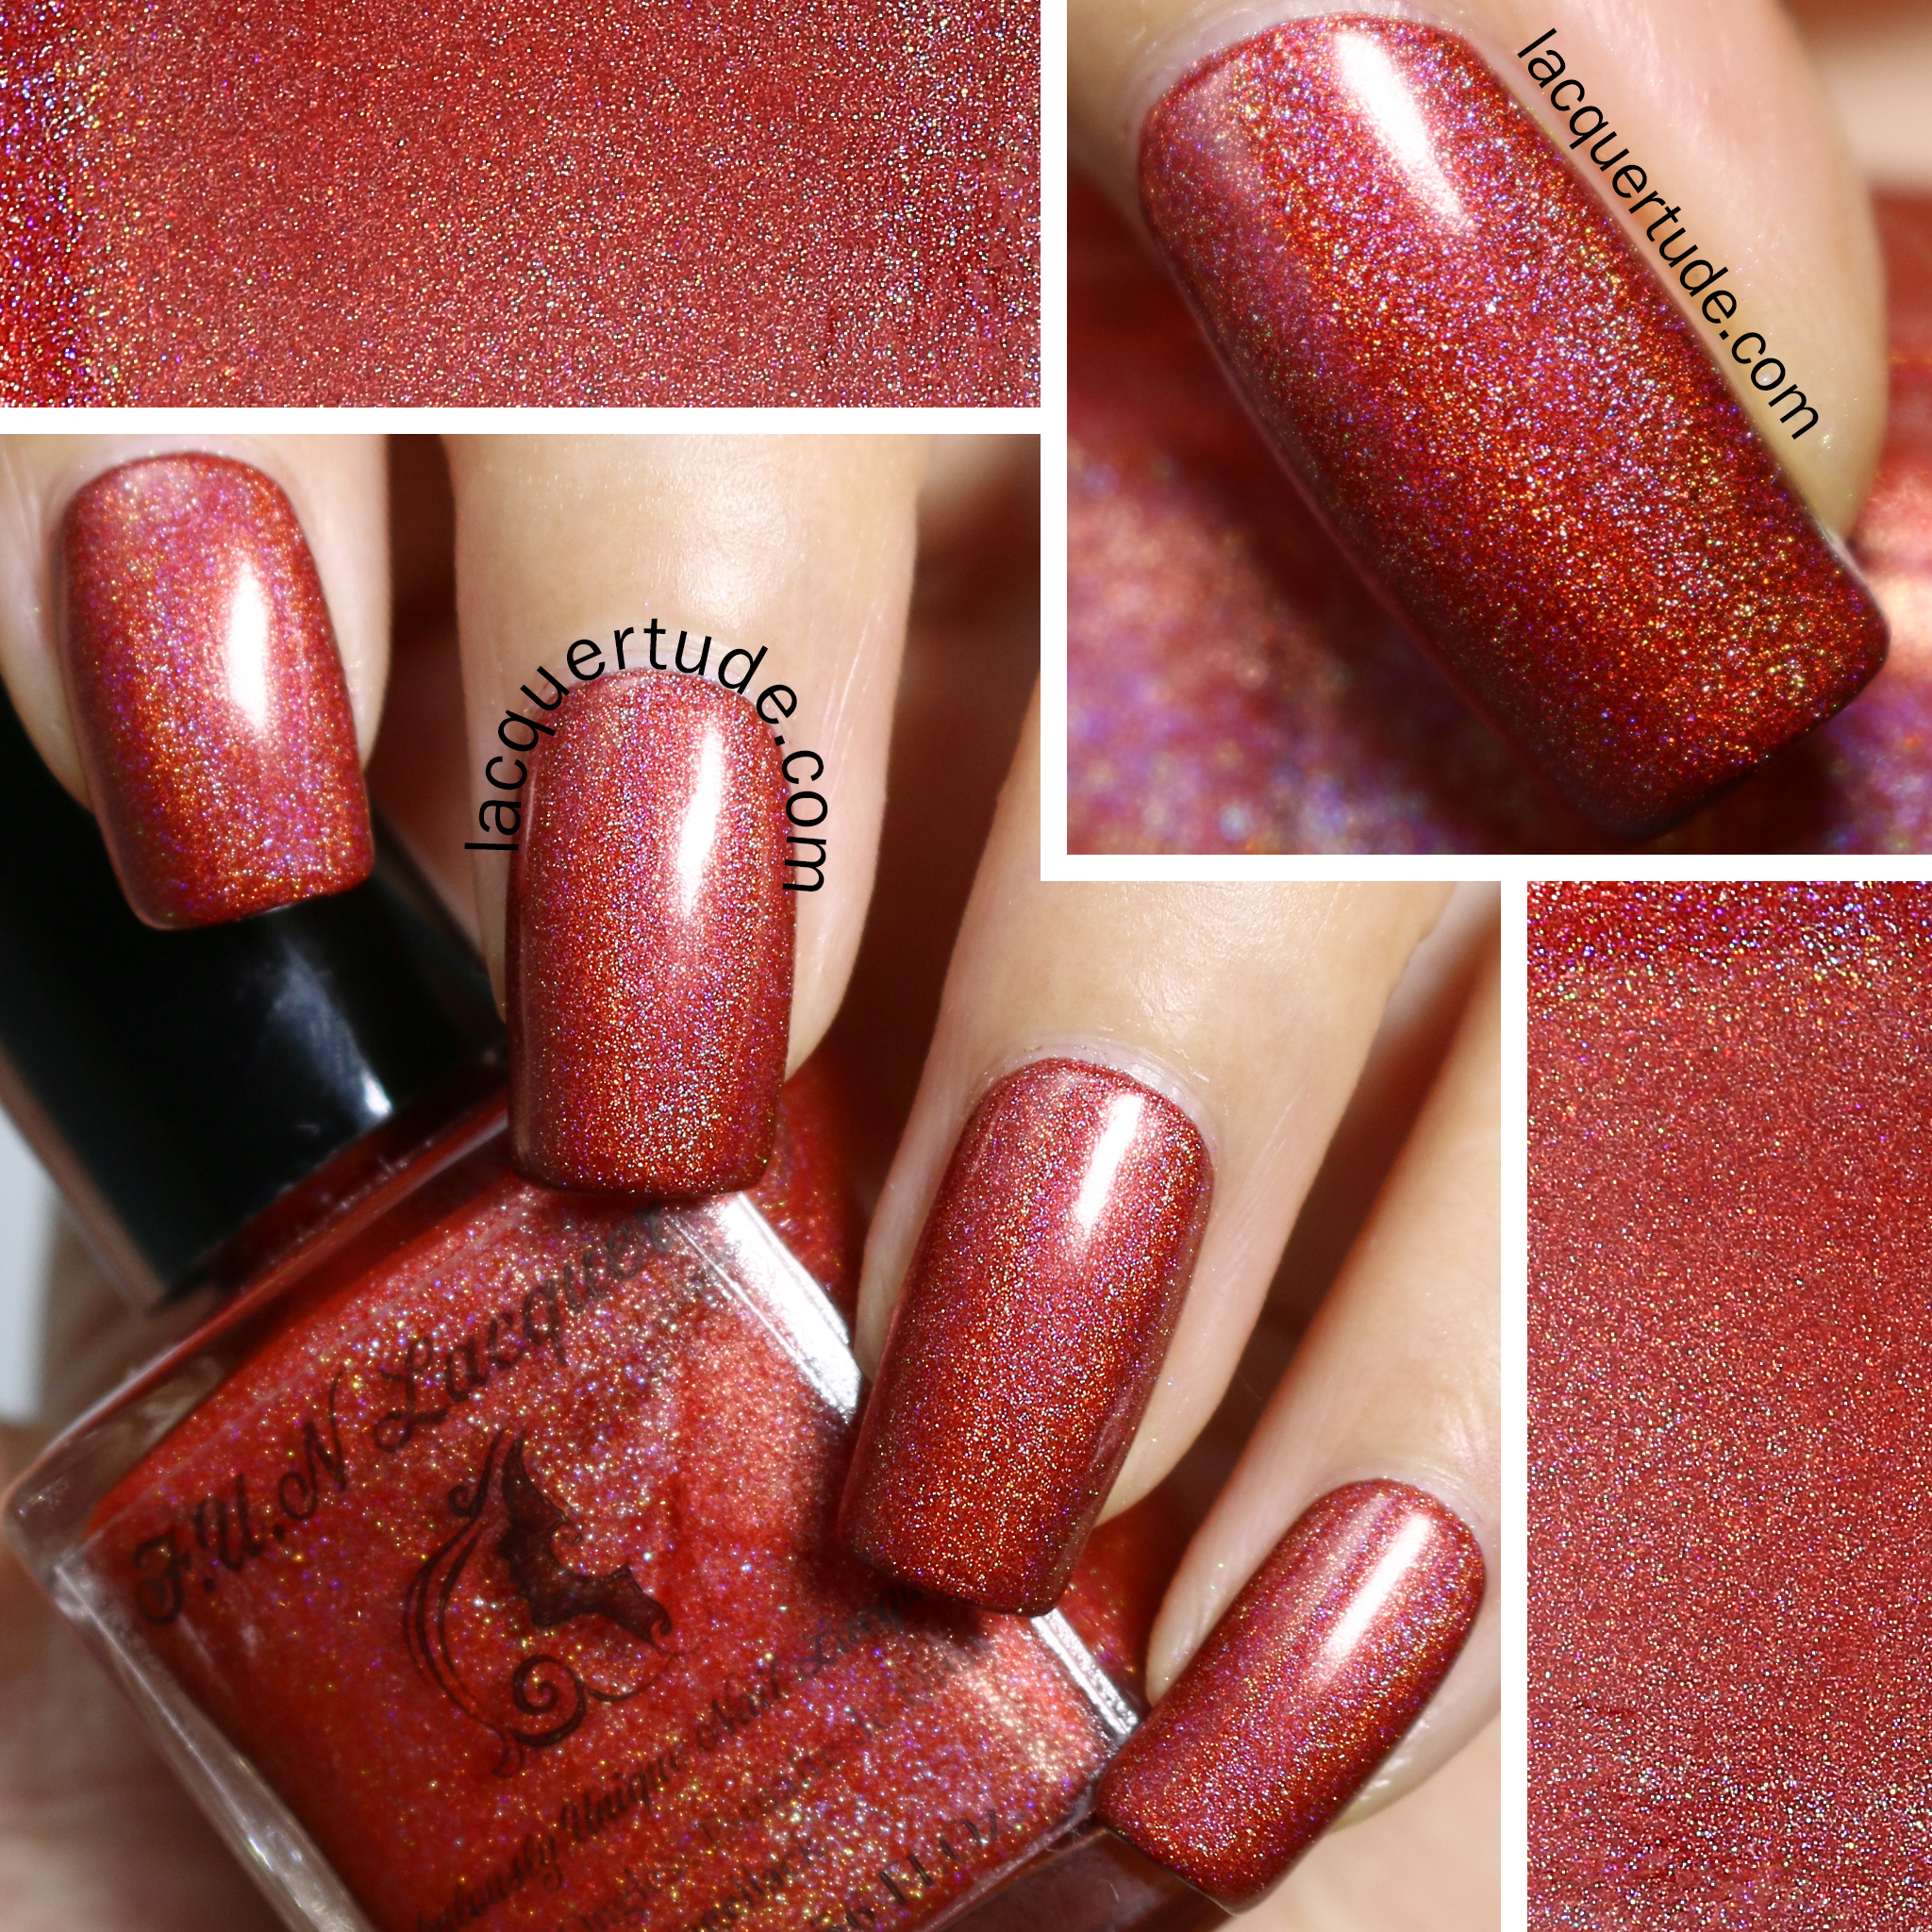 FUN-Lacquer-Radiance-Swatch-Collage